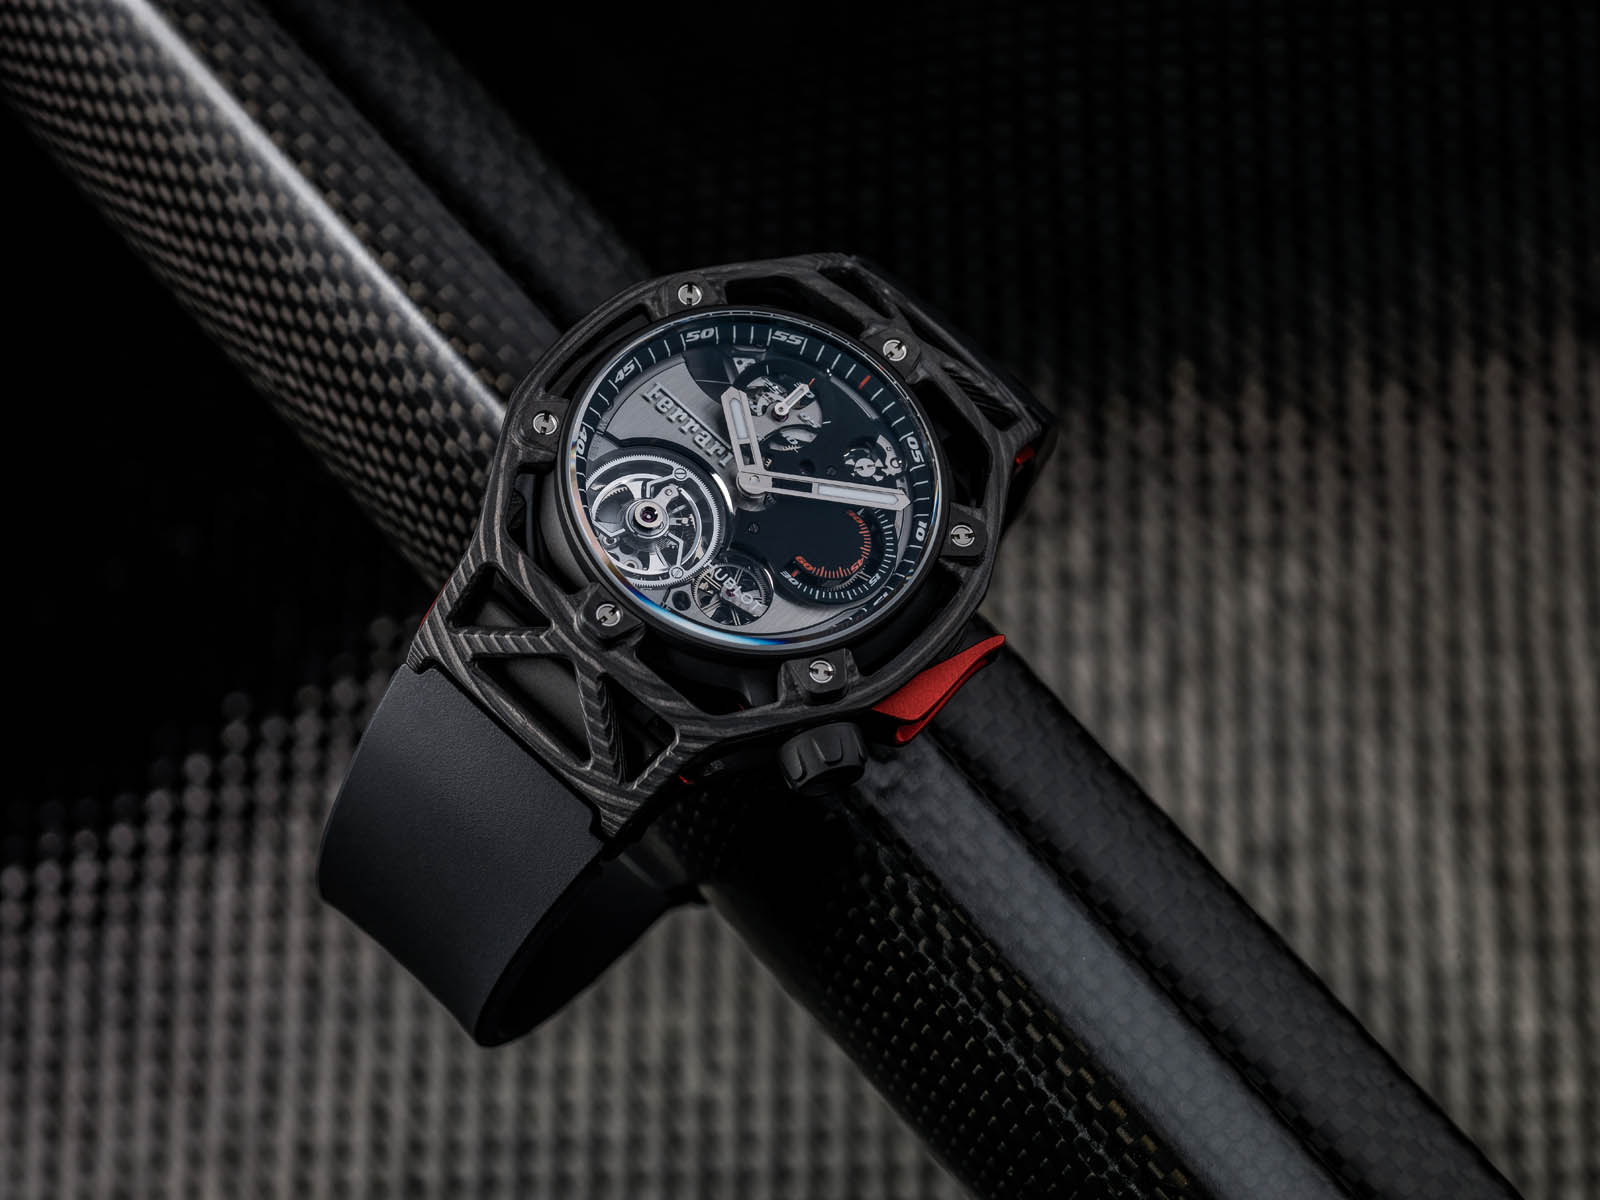 Hublot Techframe (7)